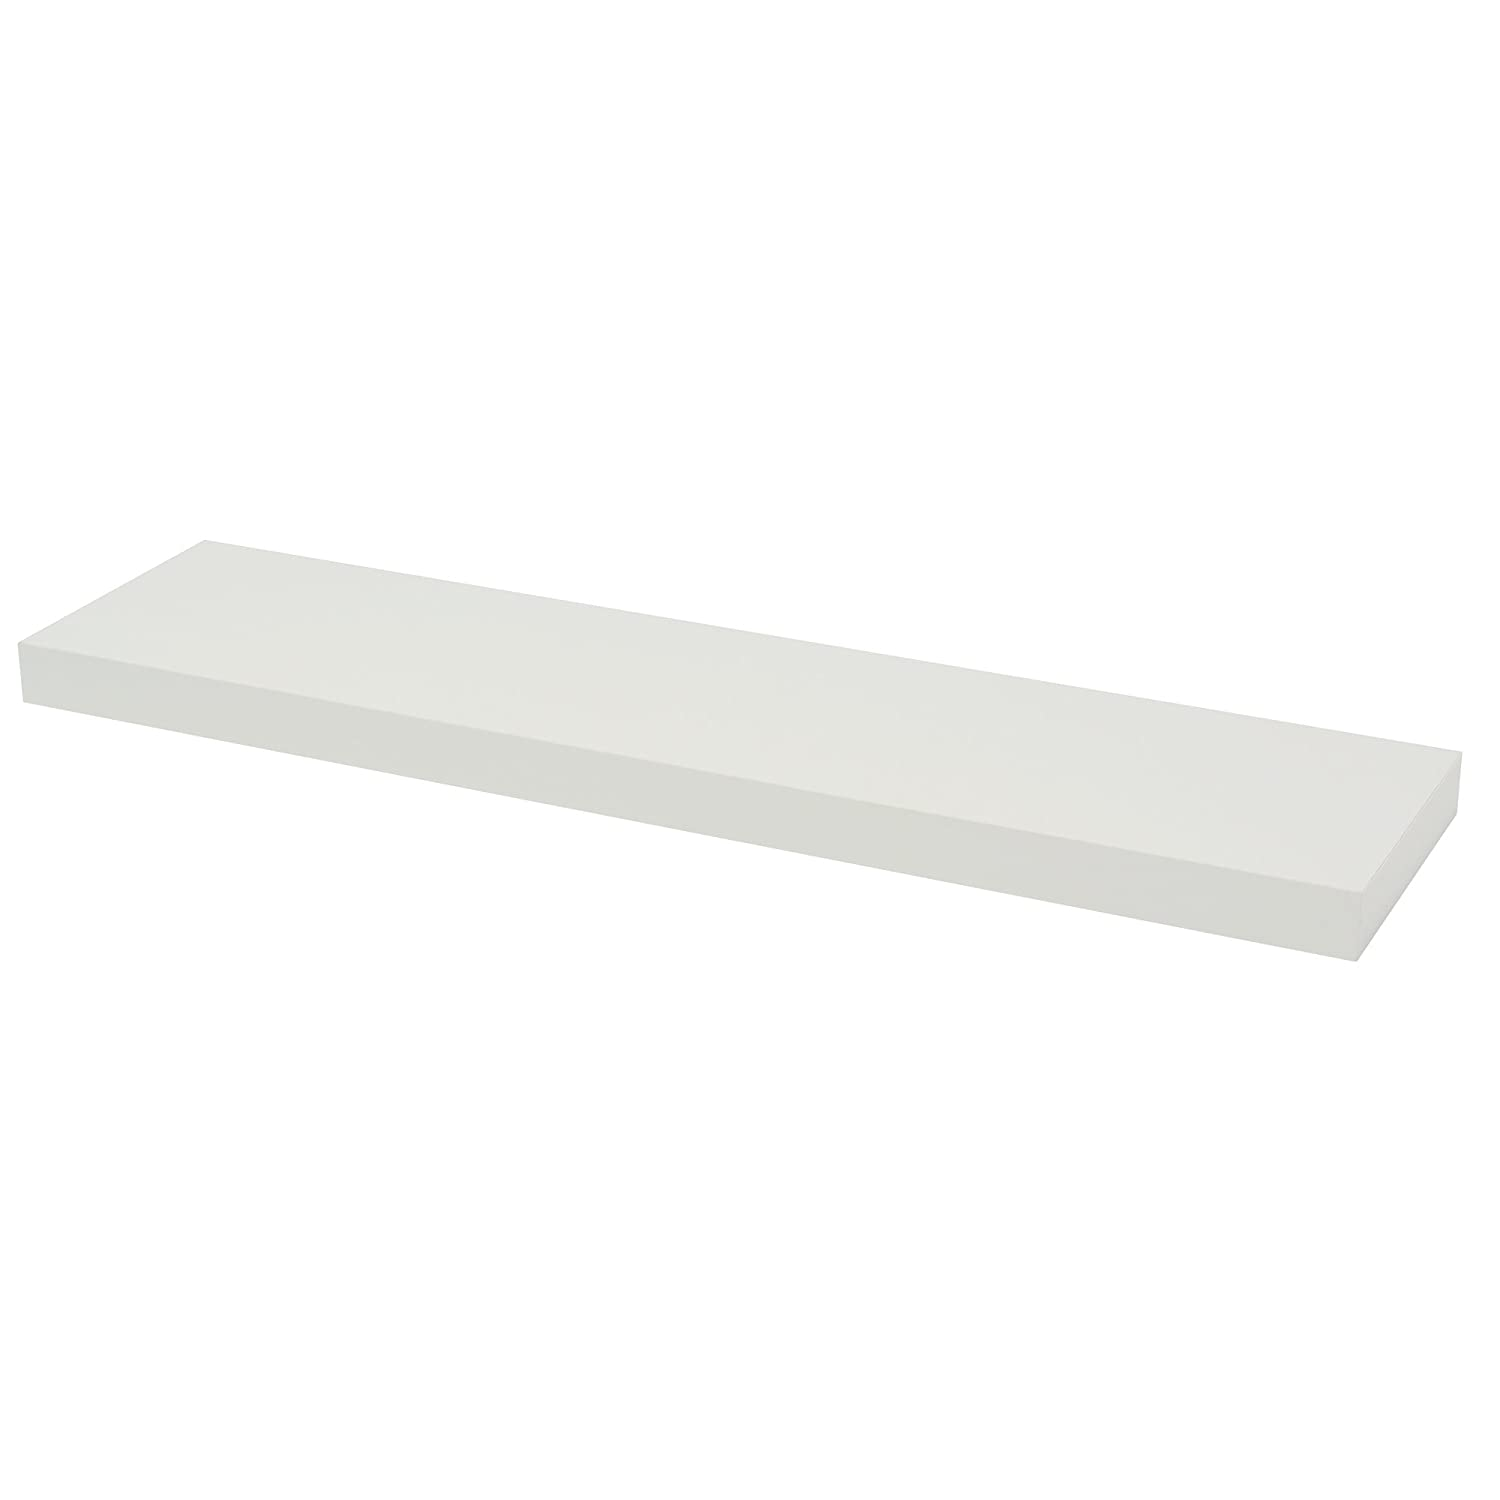 Amazon floating shelves home kitchen duraline floating wall shelf white 38 x 80 x 20 cm amipublicfo Image collections